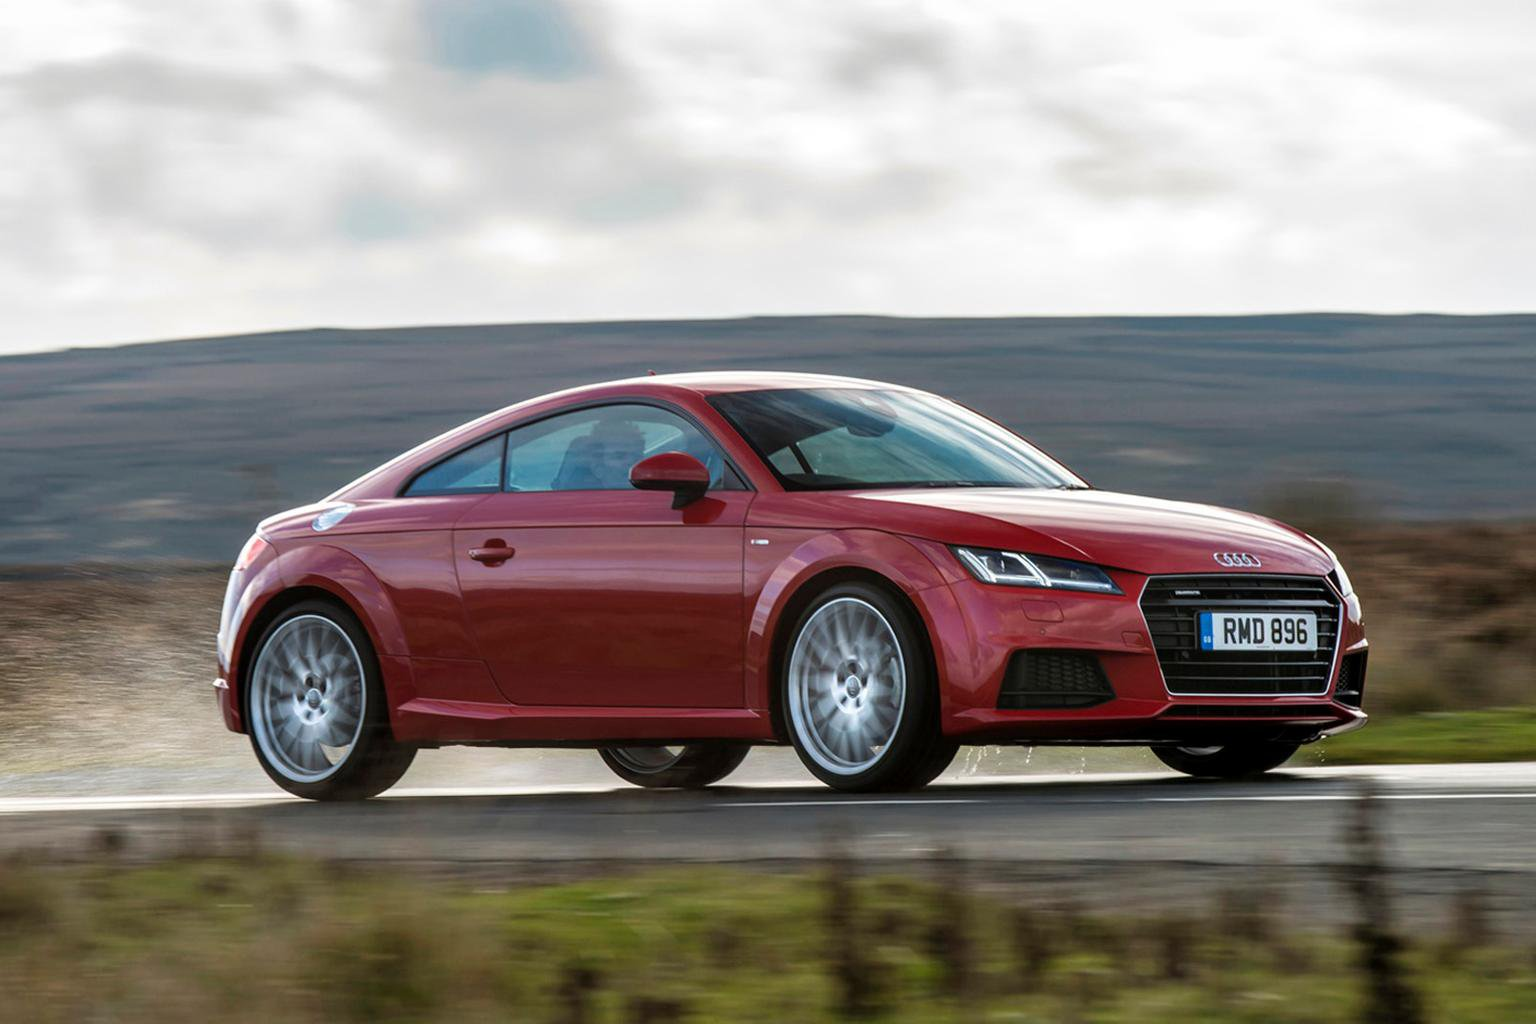 2015 Audi TT 2.0 TDI Ultra review